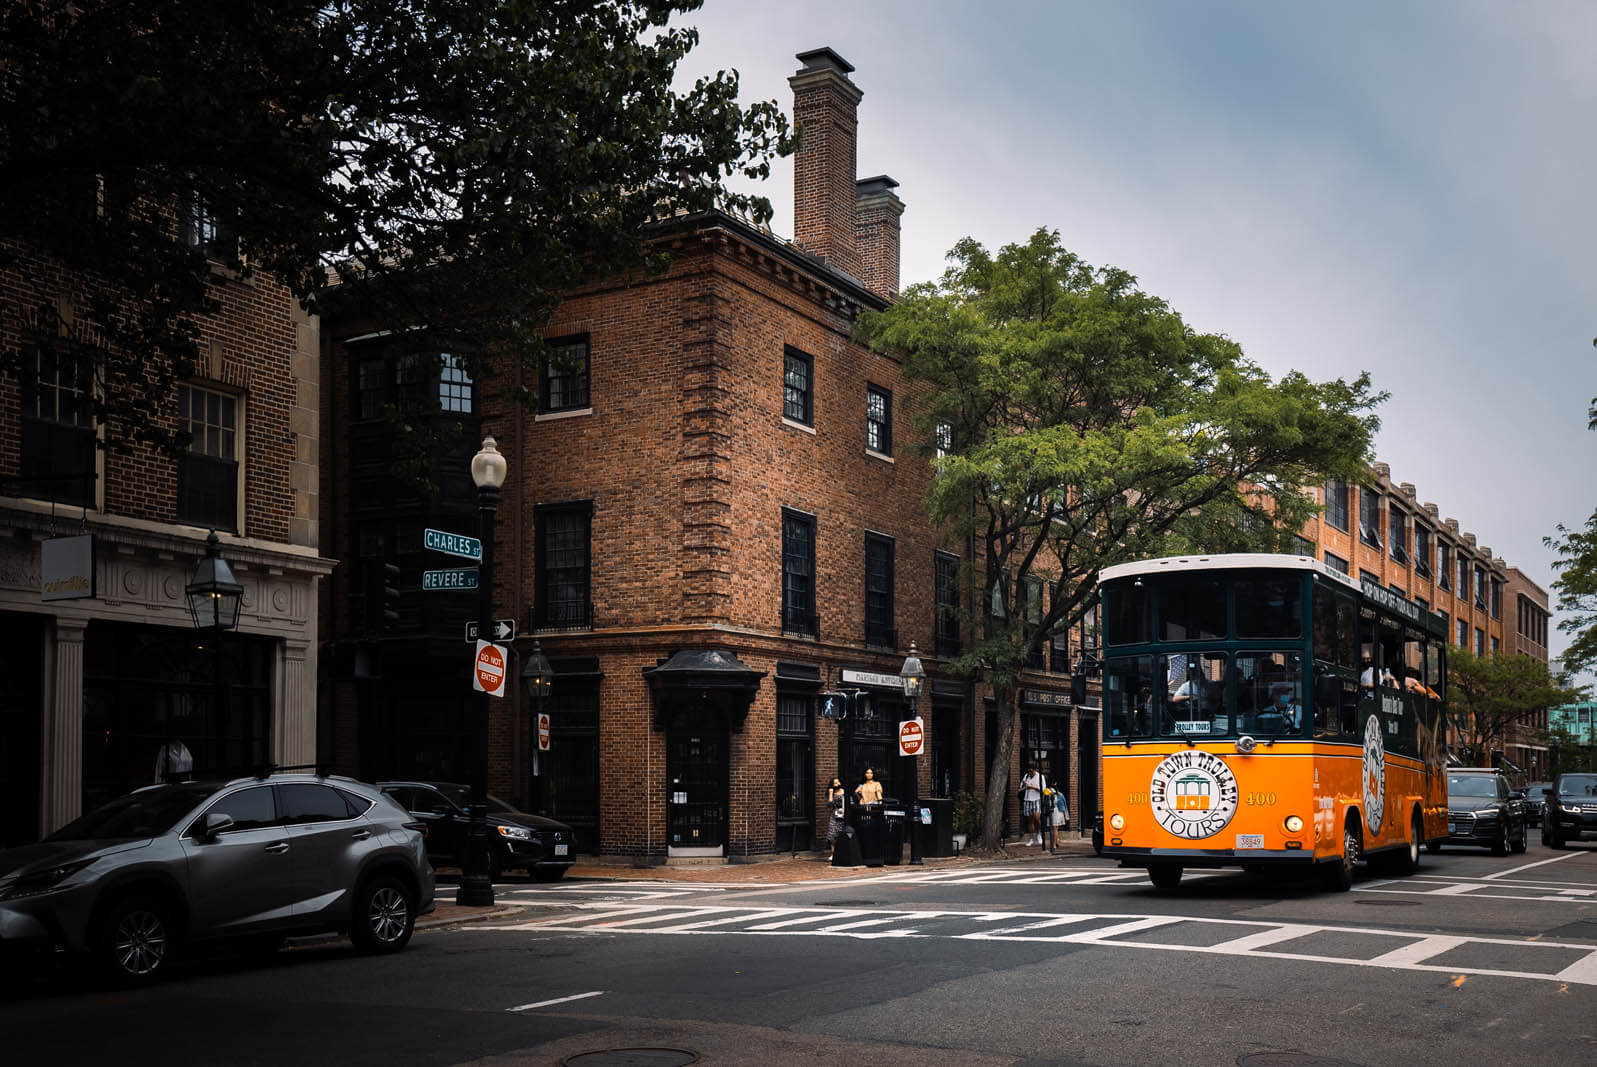 Trolley going down Charles Street in Beacon Hill Boston